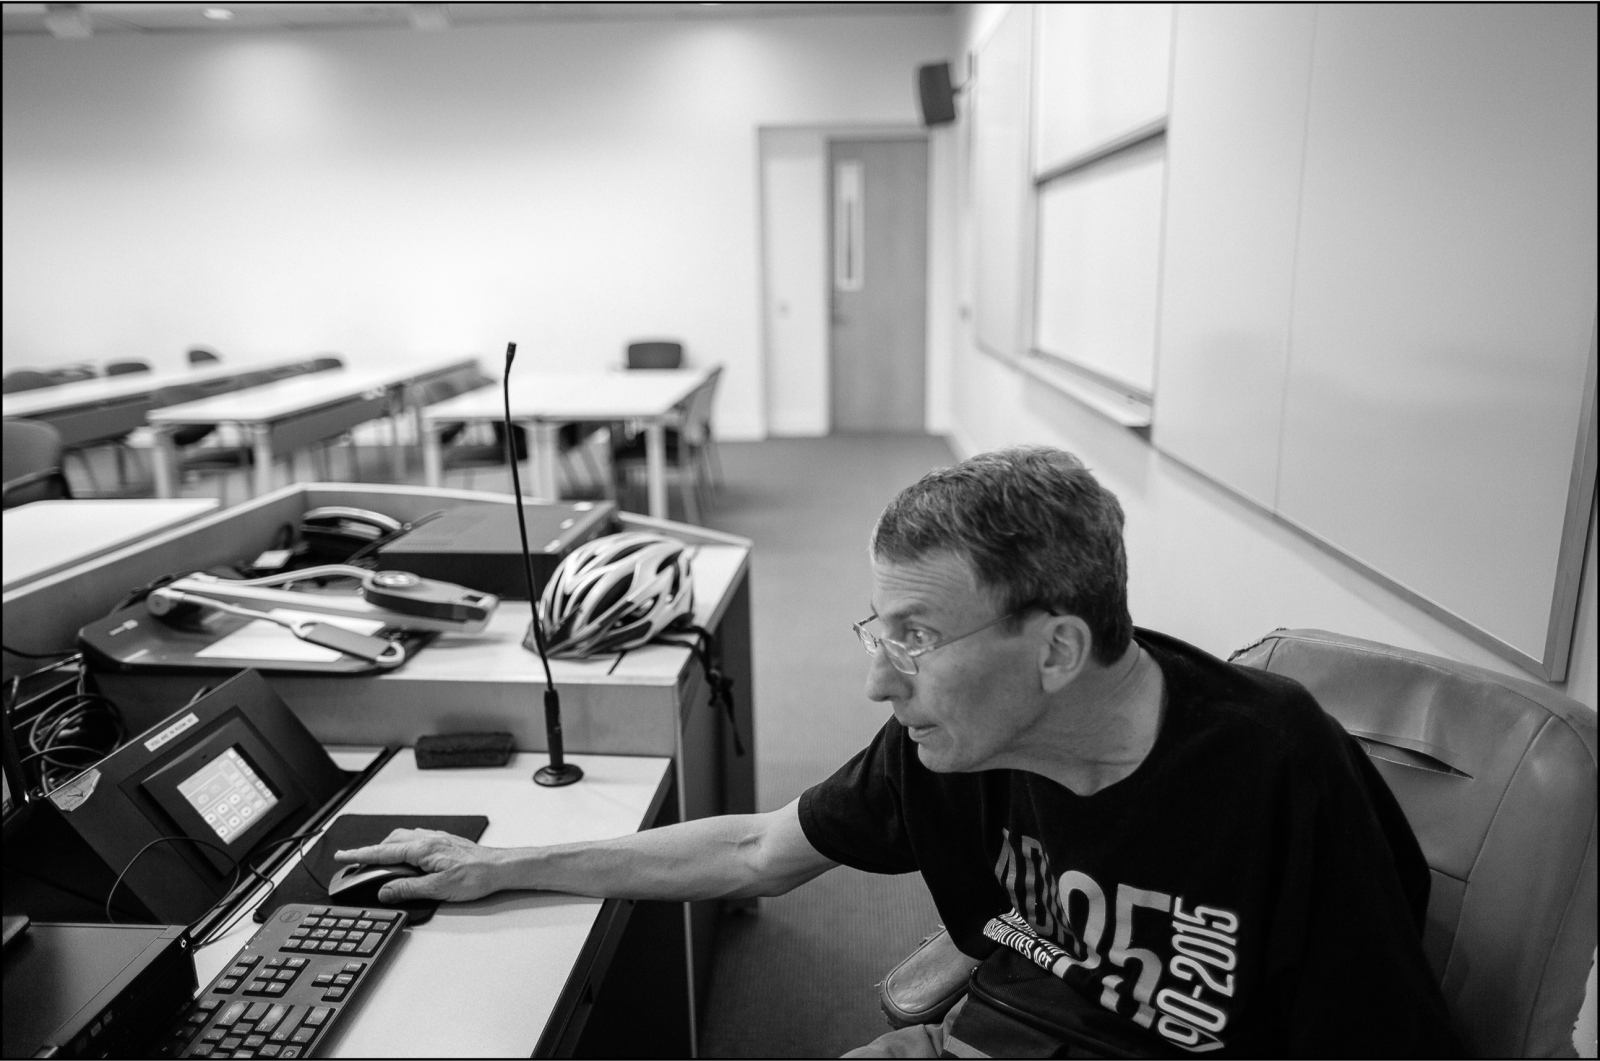 Art Blaser prepares for his Fall 2015 courses by checking the classroom that operates TextAloud, a software that converts screen words into spoken words. Blaser uses assistive technology to teach at Chapman University. July 17, 2015.